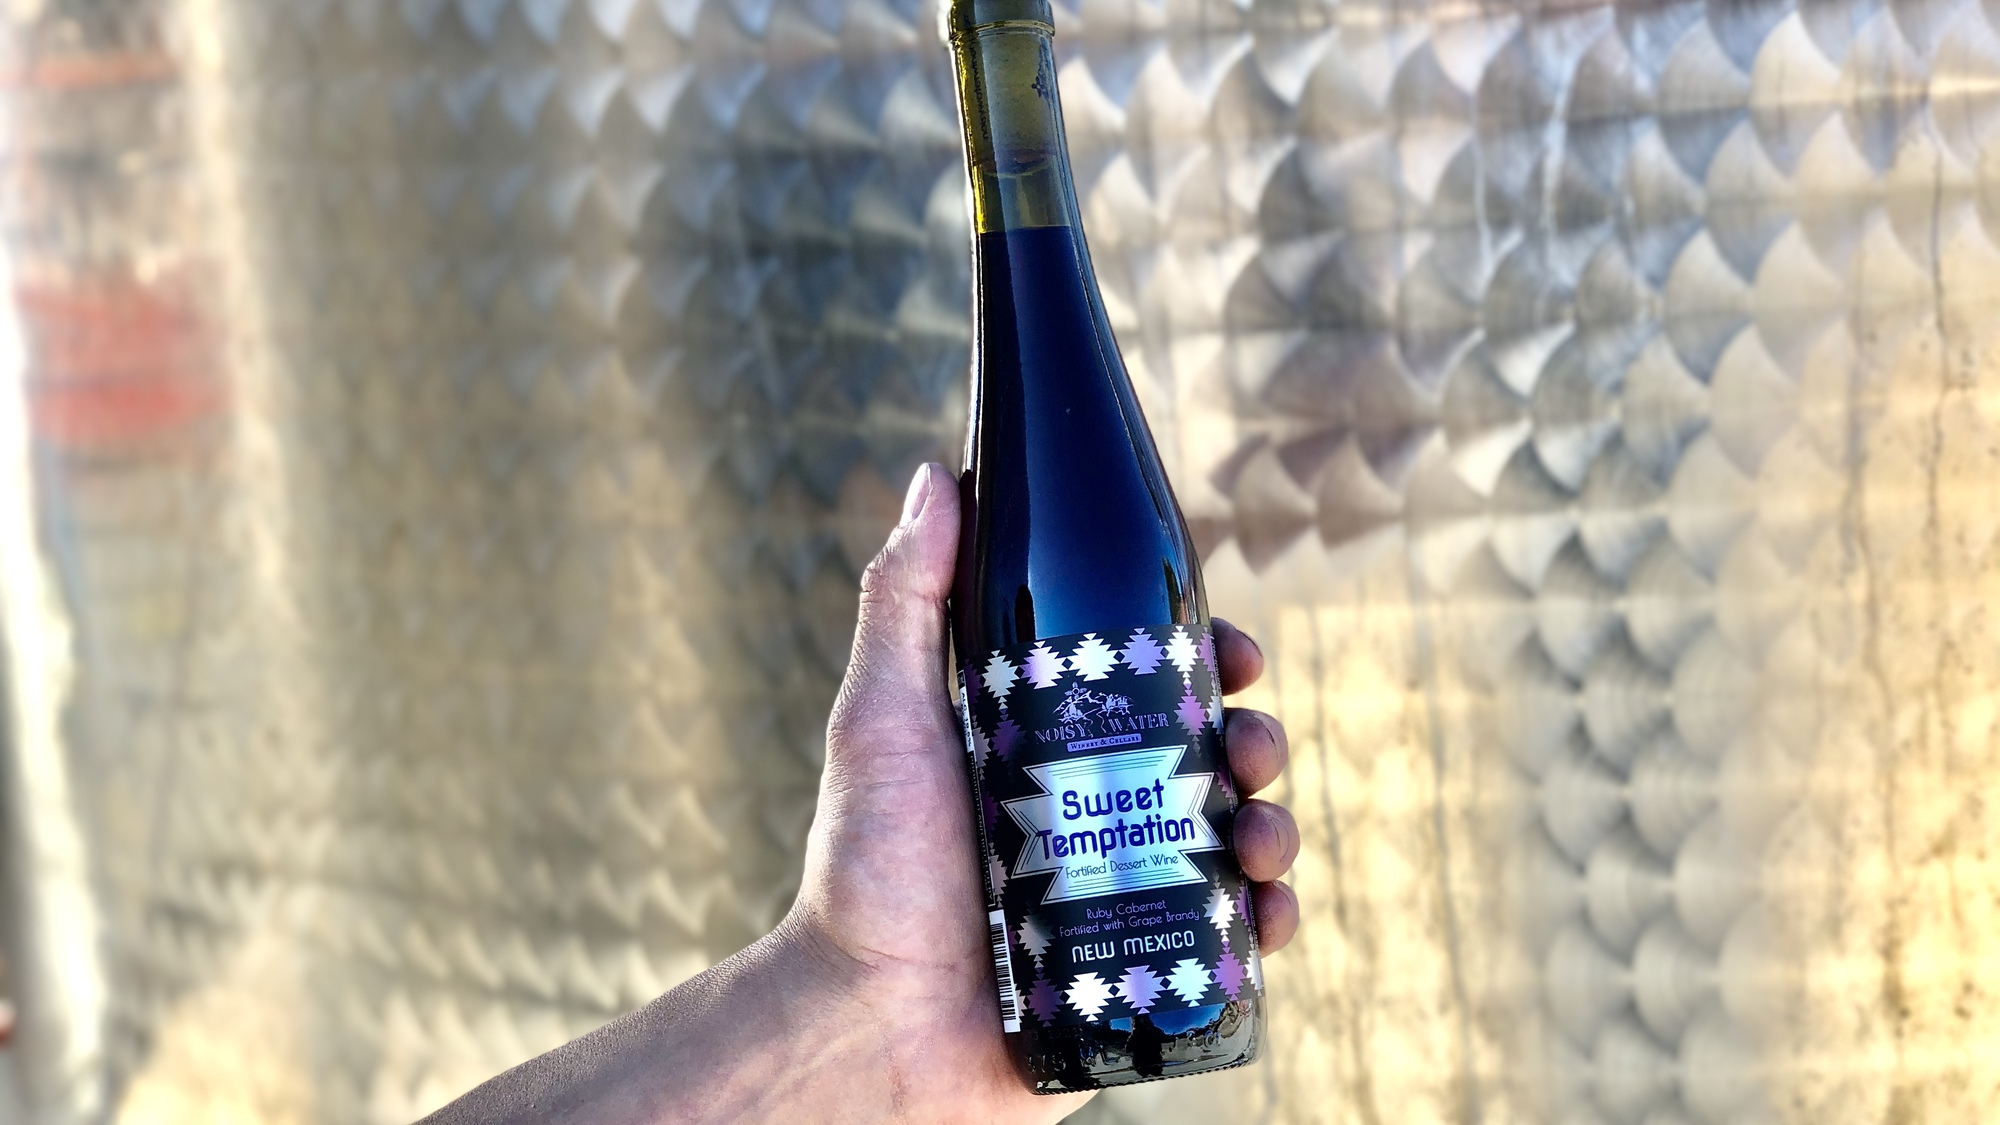 Noisy Water Winery's 2019 Wild Ferment Old Vine Pinot Noir